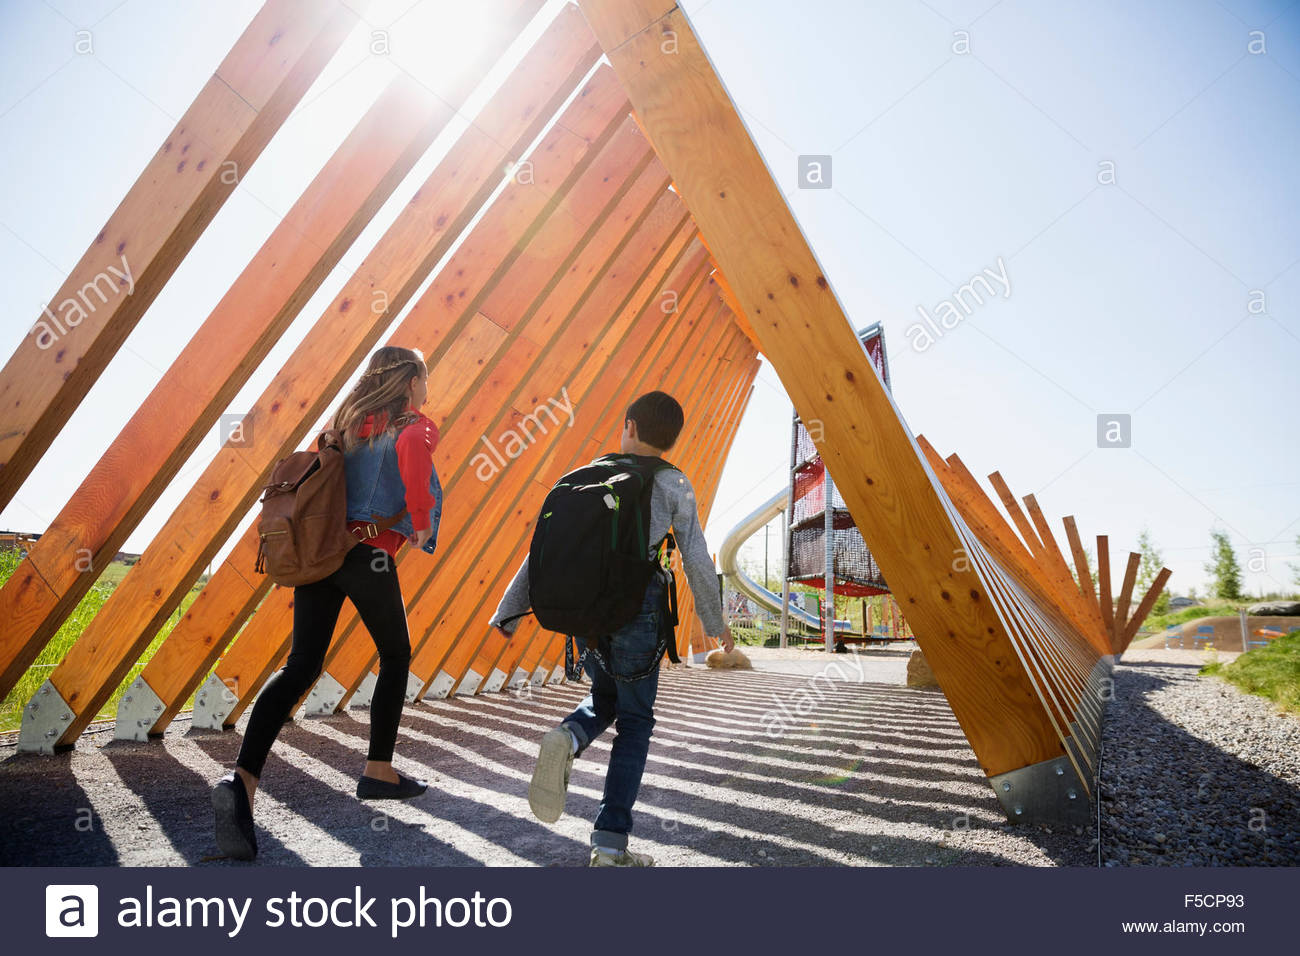 School kids with backpacks running under wood beams - Stock Image